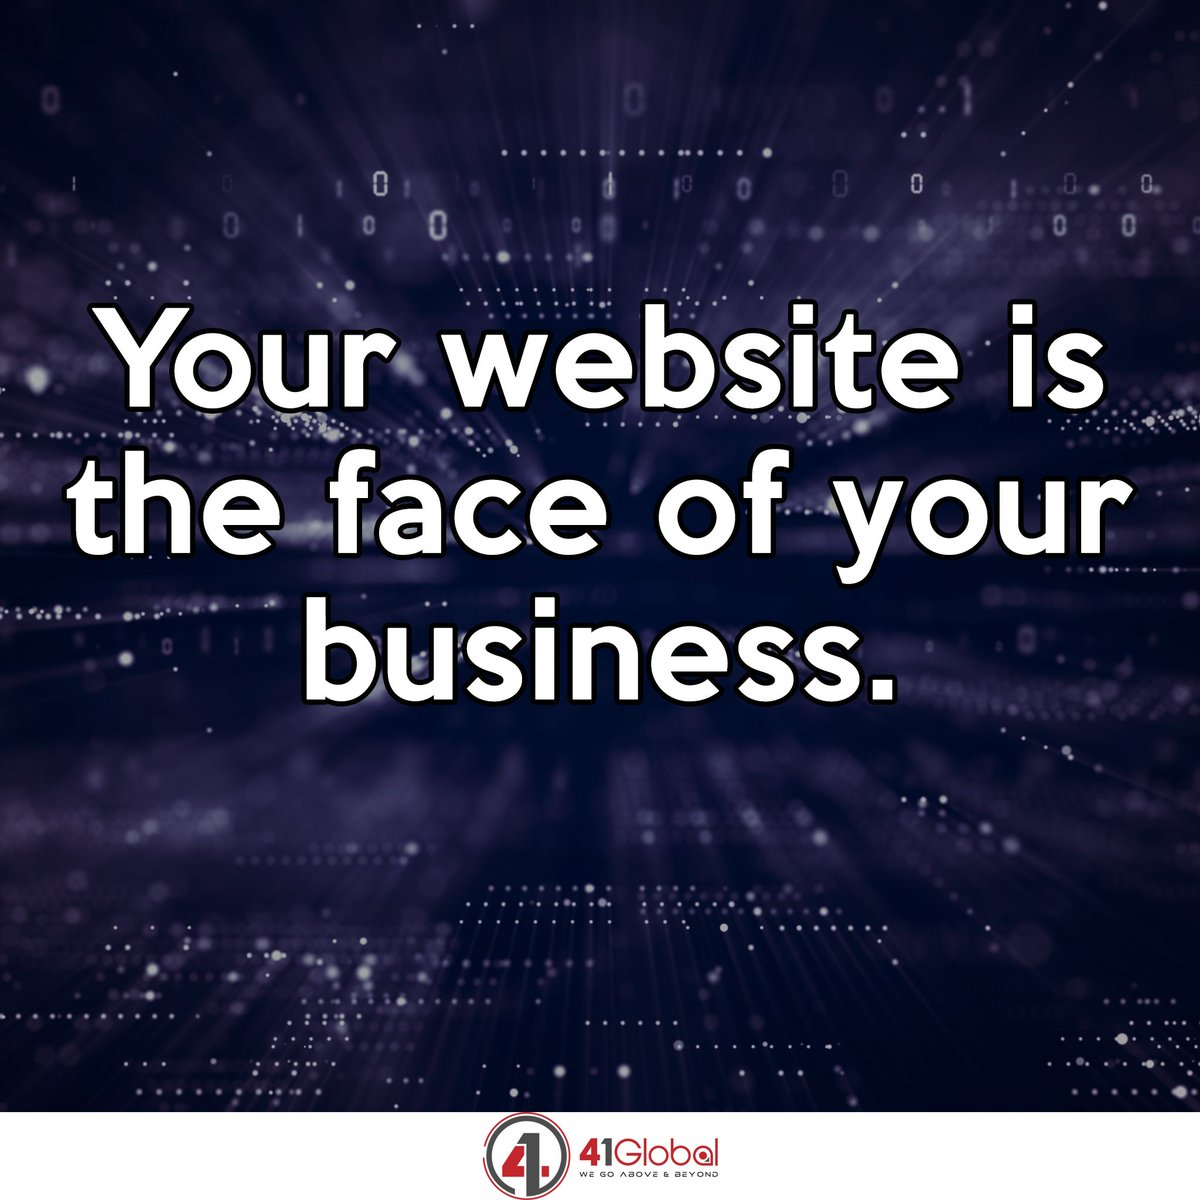 Never forget that for many of your future clients, your website may be the only connection they ever have to your business. https://t.co/i2Nsv7dRrO  #41Global #webdevelopment #webdesigncompany #atlanta #webdesigns #webdesigner https://t.co/MPBXaJuoKI